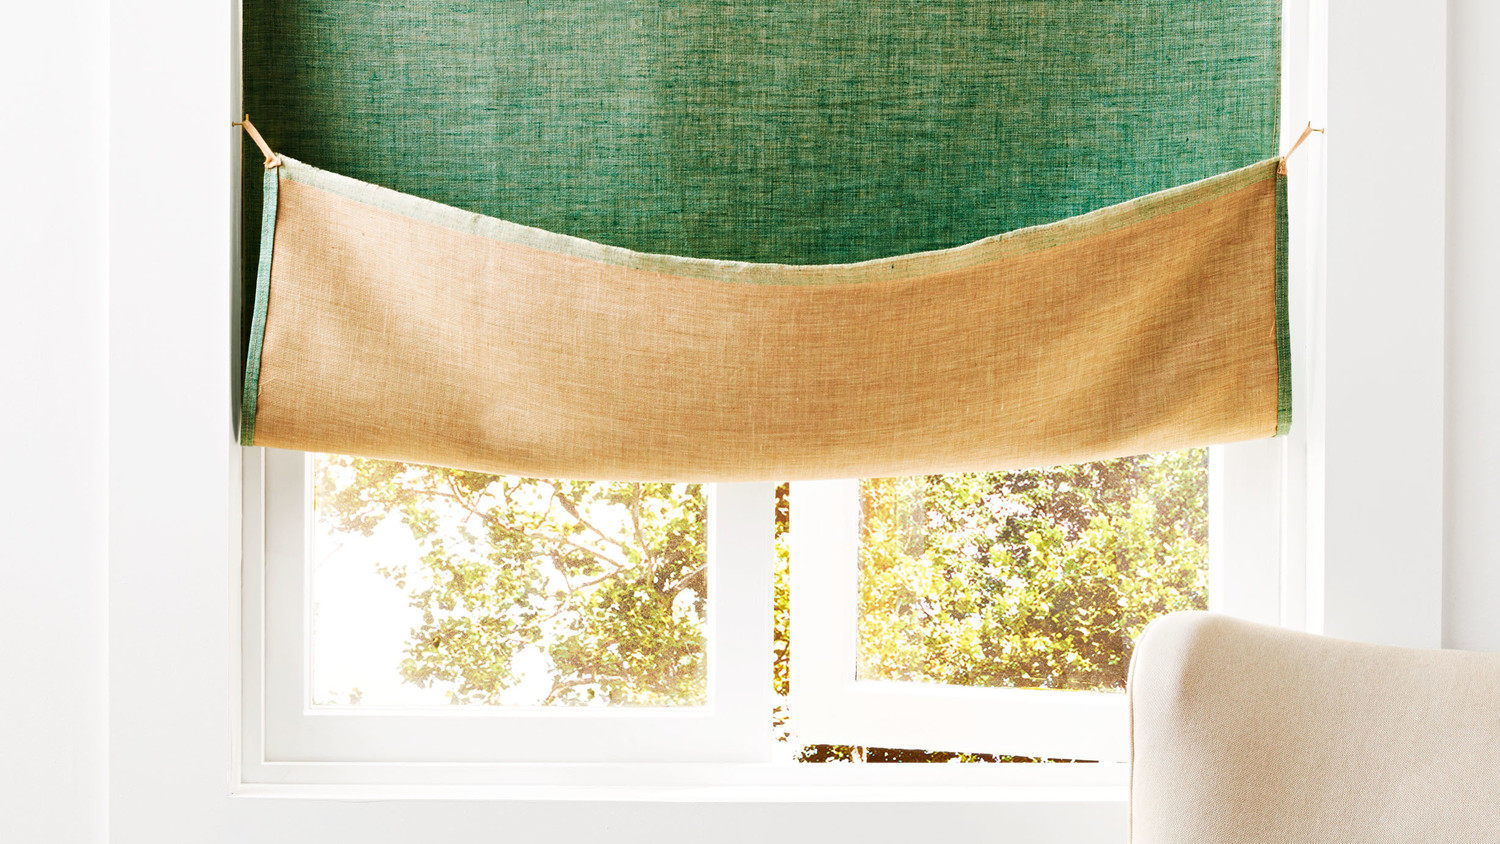 Hot Bargains! 50% Off Archaeo Washed Cotton Twist Tab Regarding Archaeo Washed Cotton Twist Tab Single Curtain Panels (View 9 of 20)